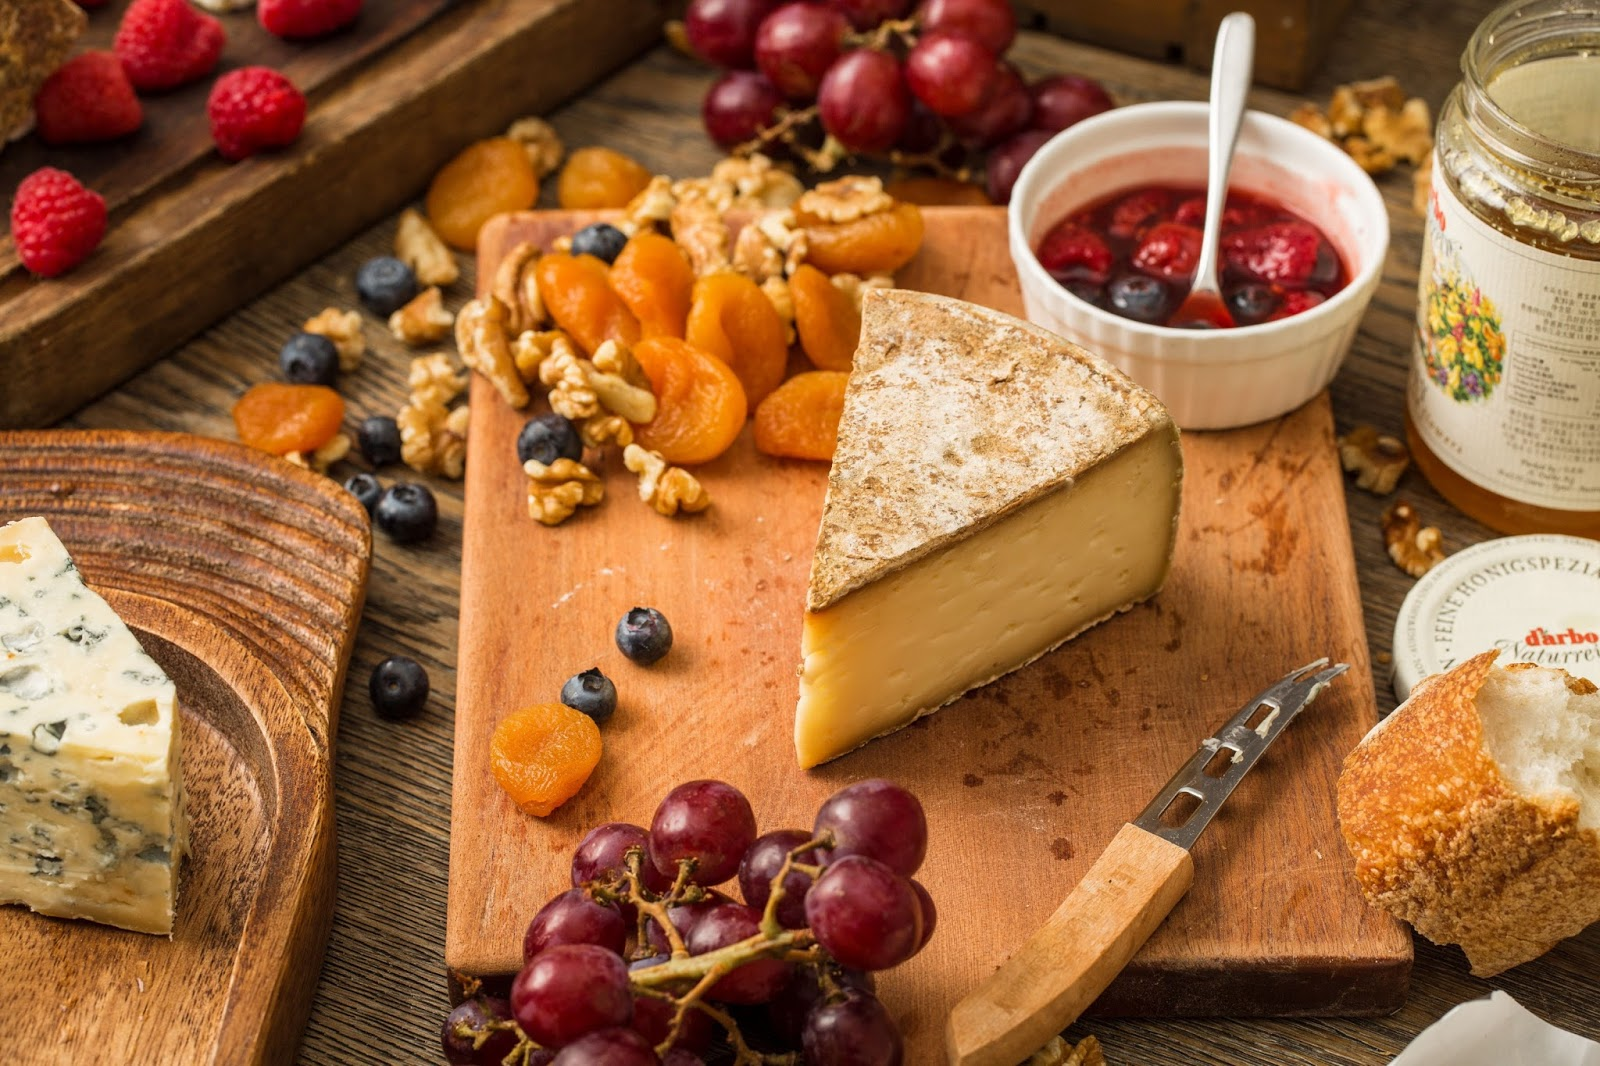 Plat du Jour, cheese board, apricot, dried fruit, party